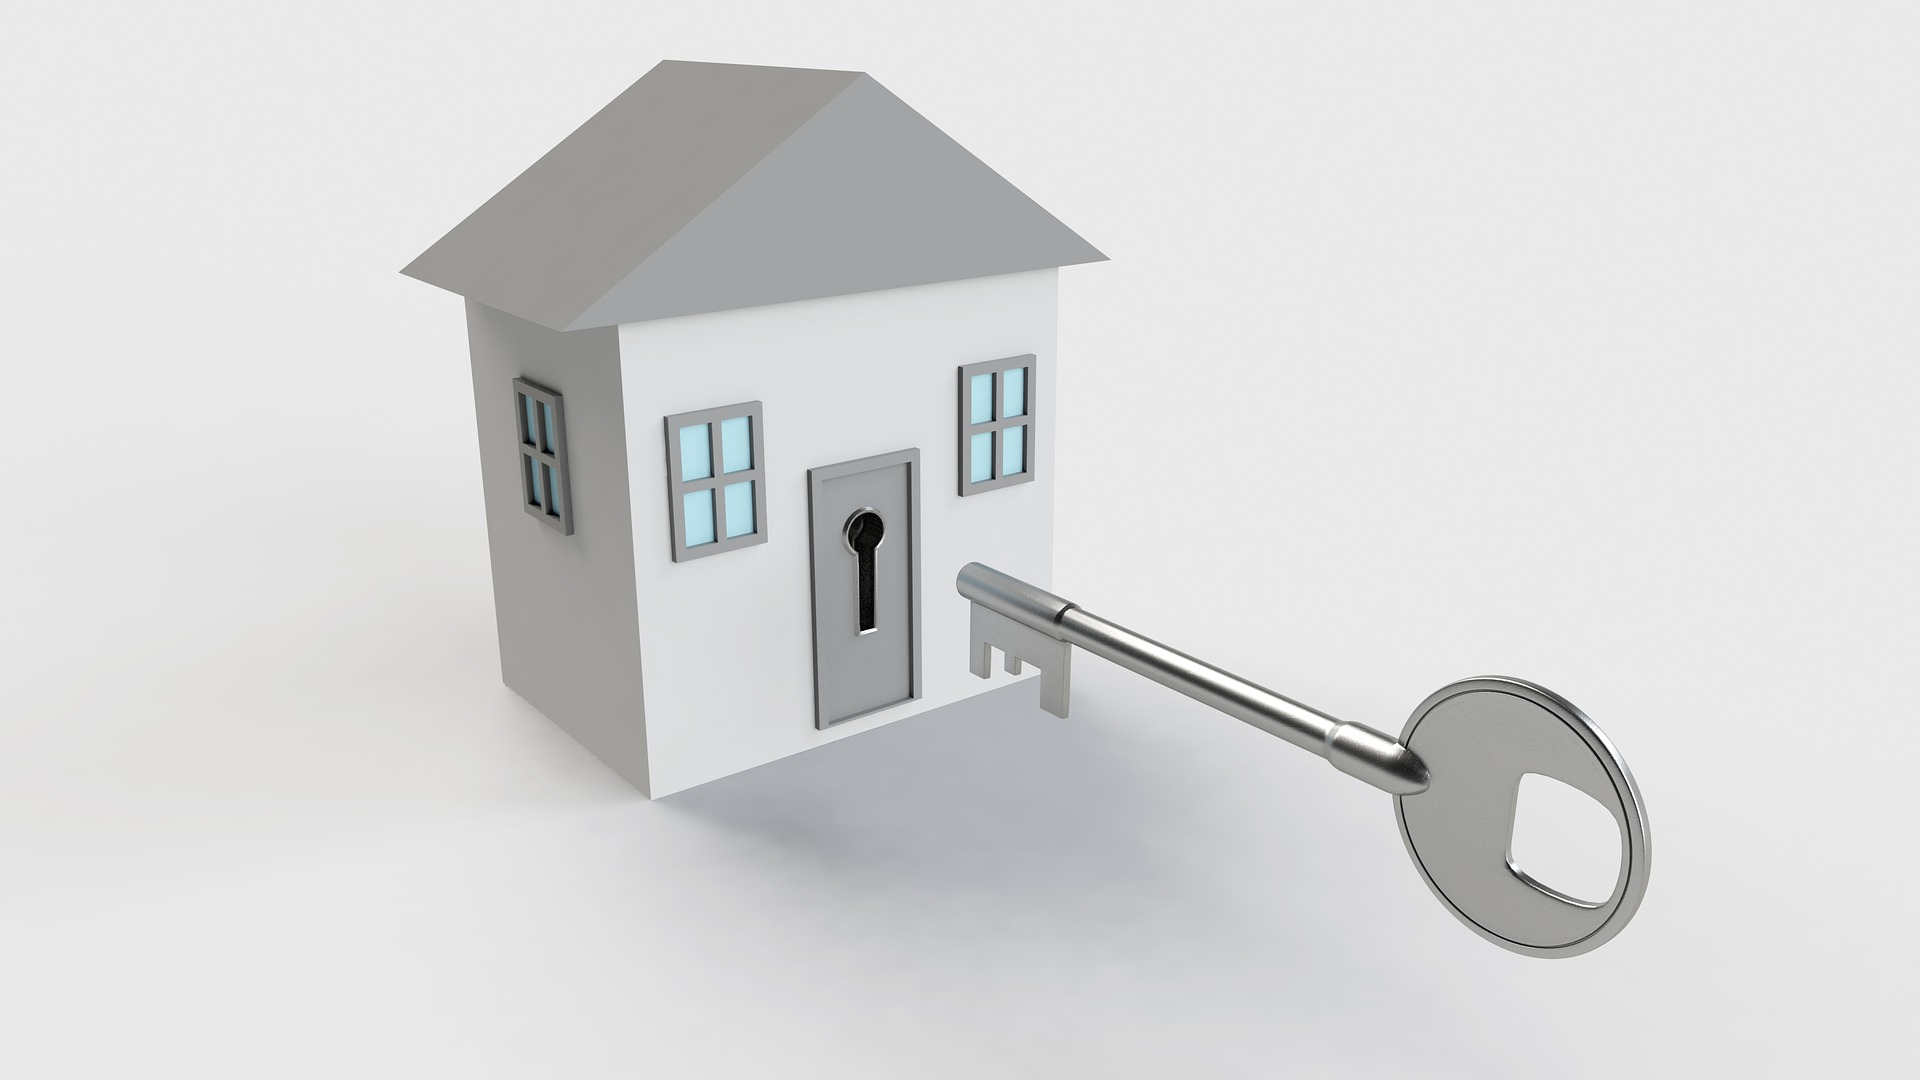 key going into house graphic.jpg